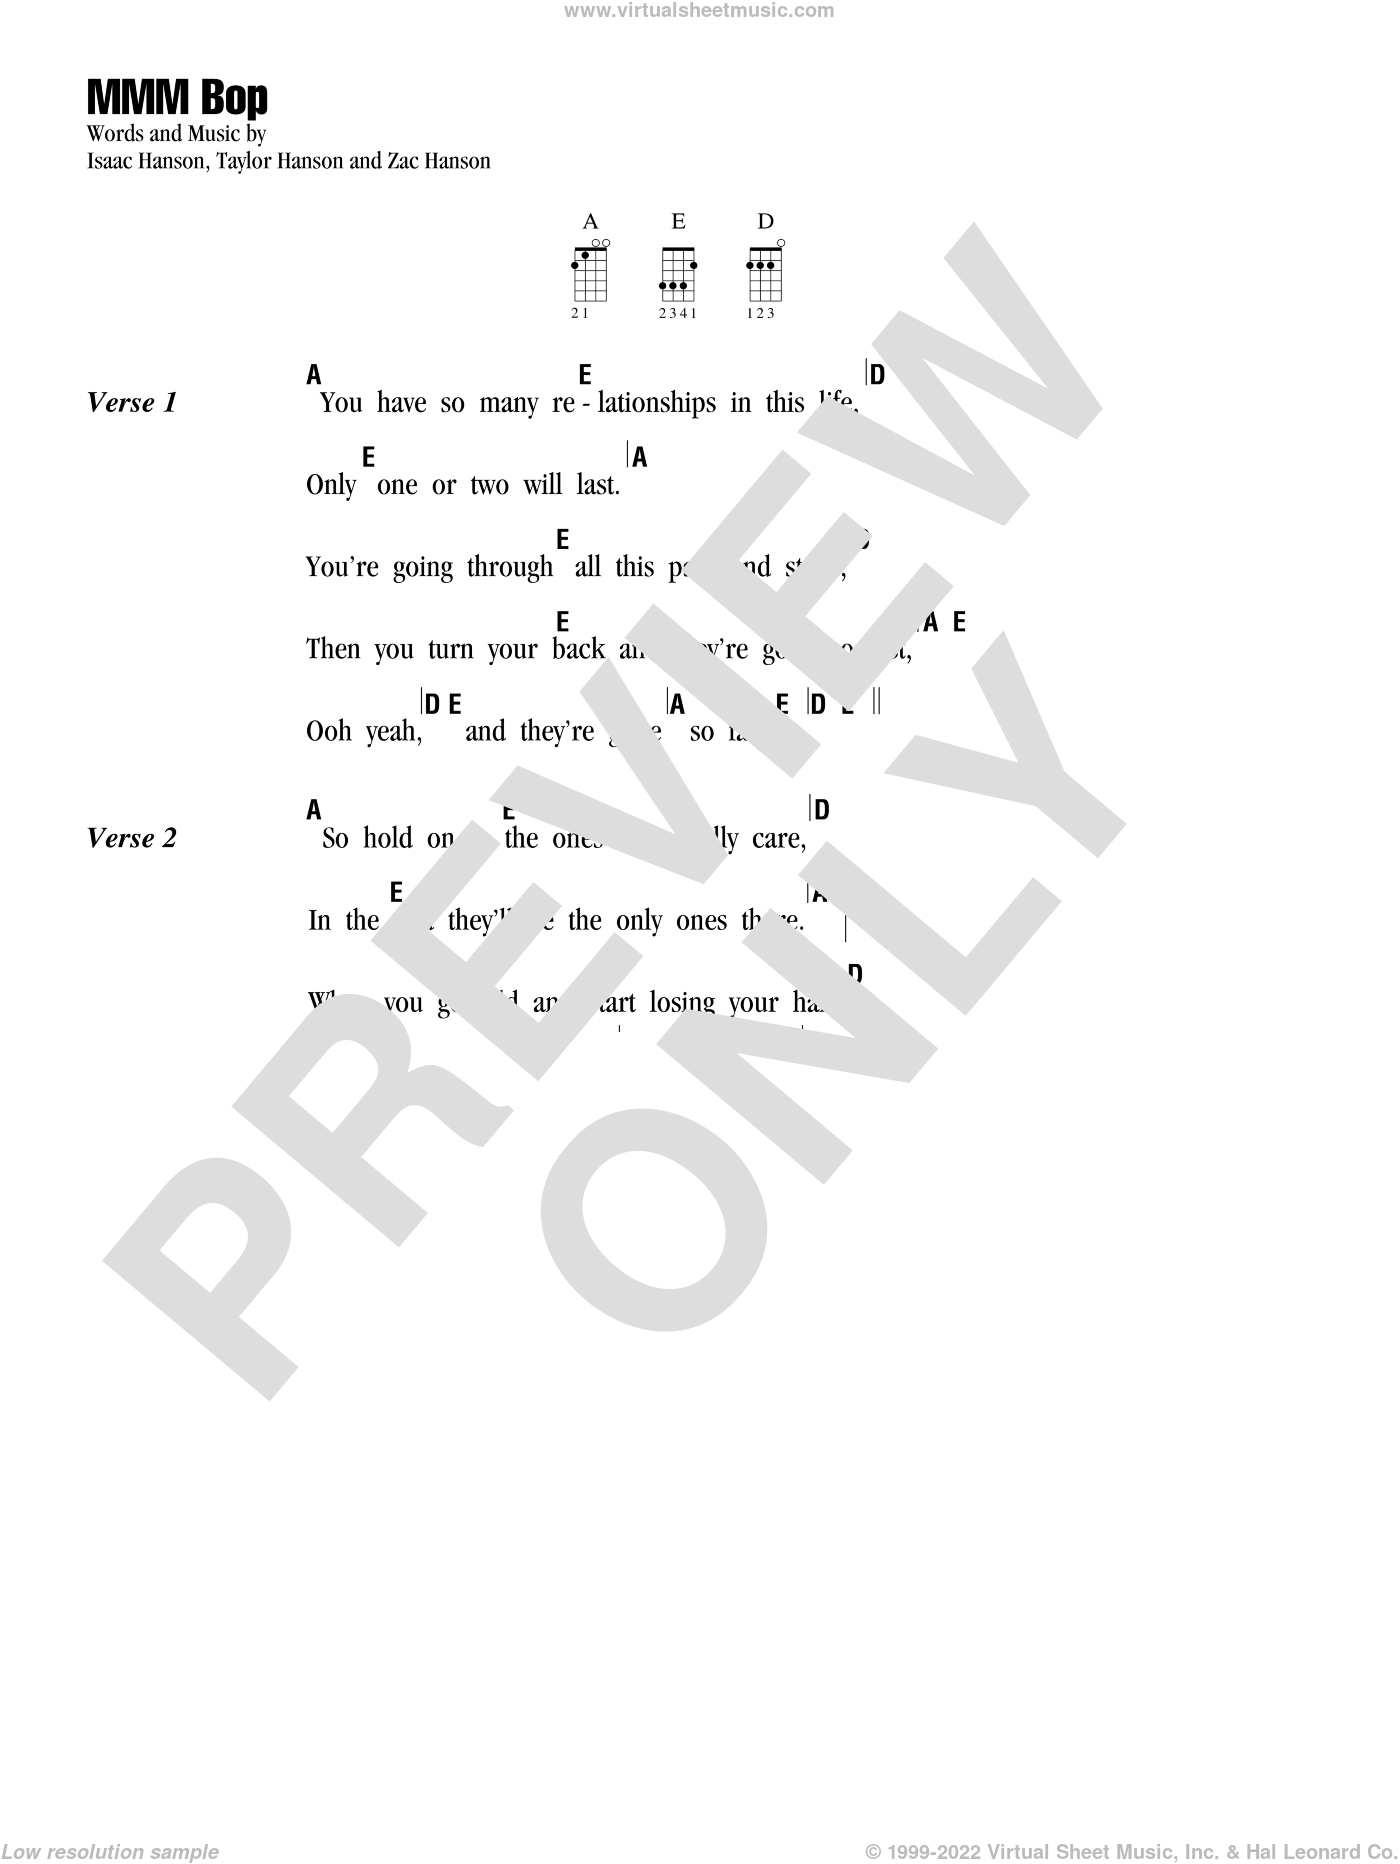 MMM Bop sheet music for ukulele (chords) by isaac Hanson, Taylor Hanson and Zachary Hanson, intermediate skill level